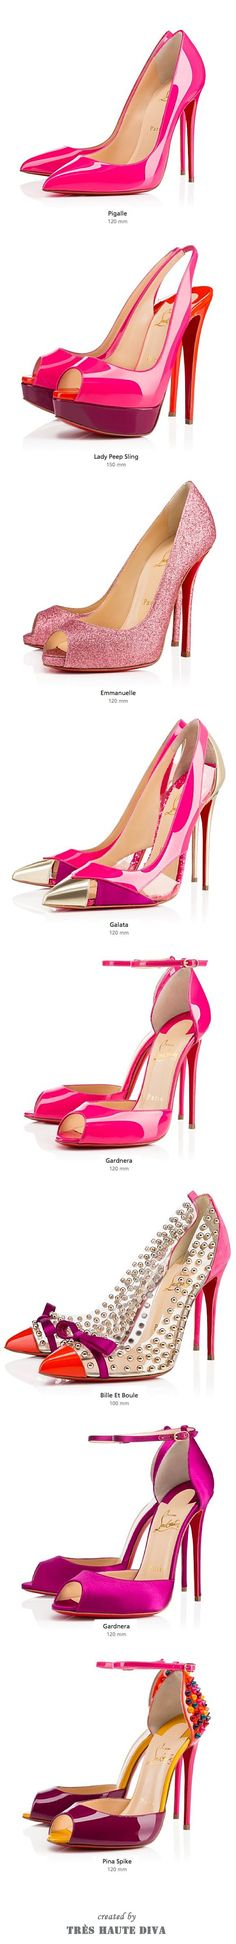 Christian Louboutin Pinks. I think i'm in love!!!